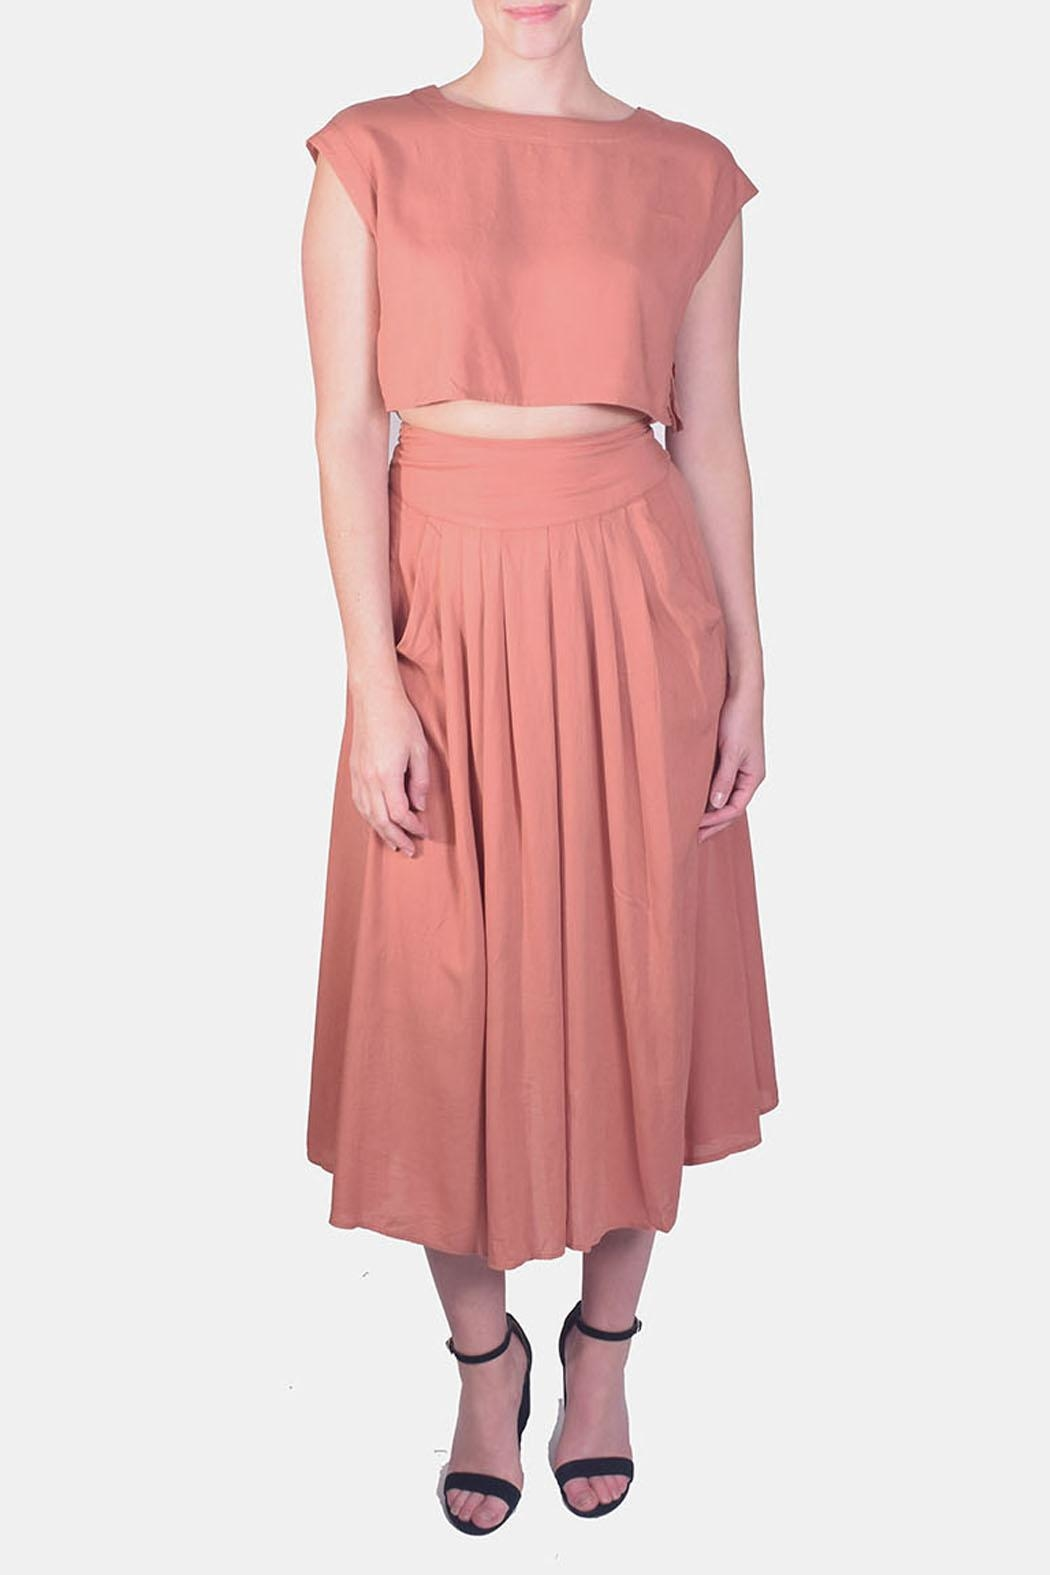 Illa Illa Crop-Top Skirt Set - Main Image